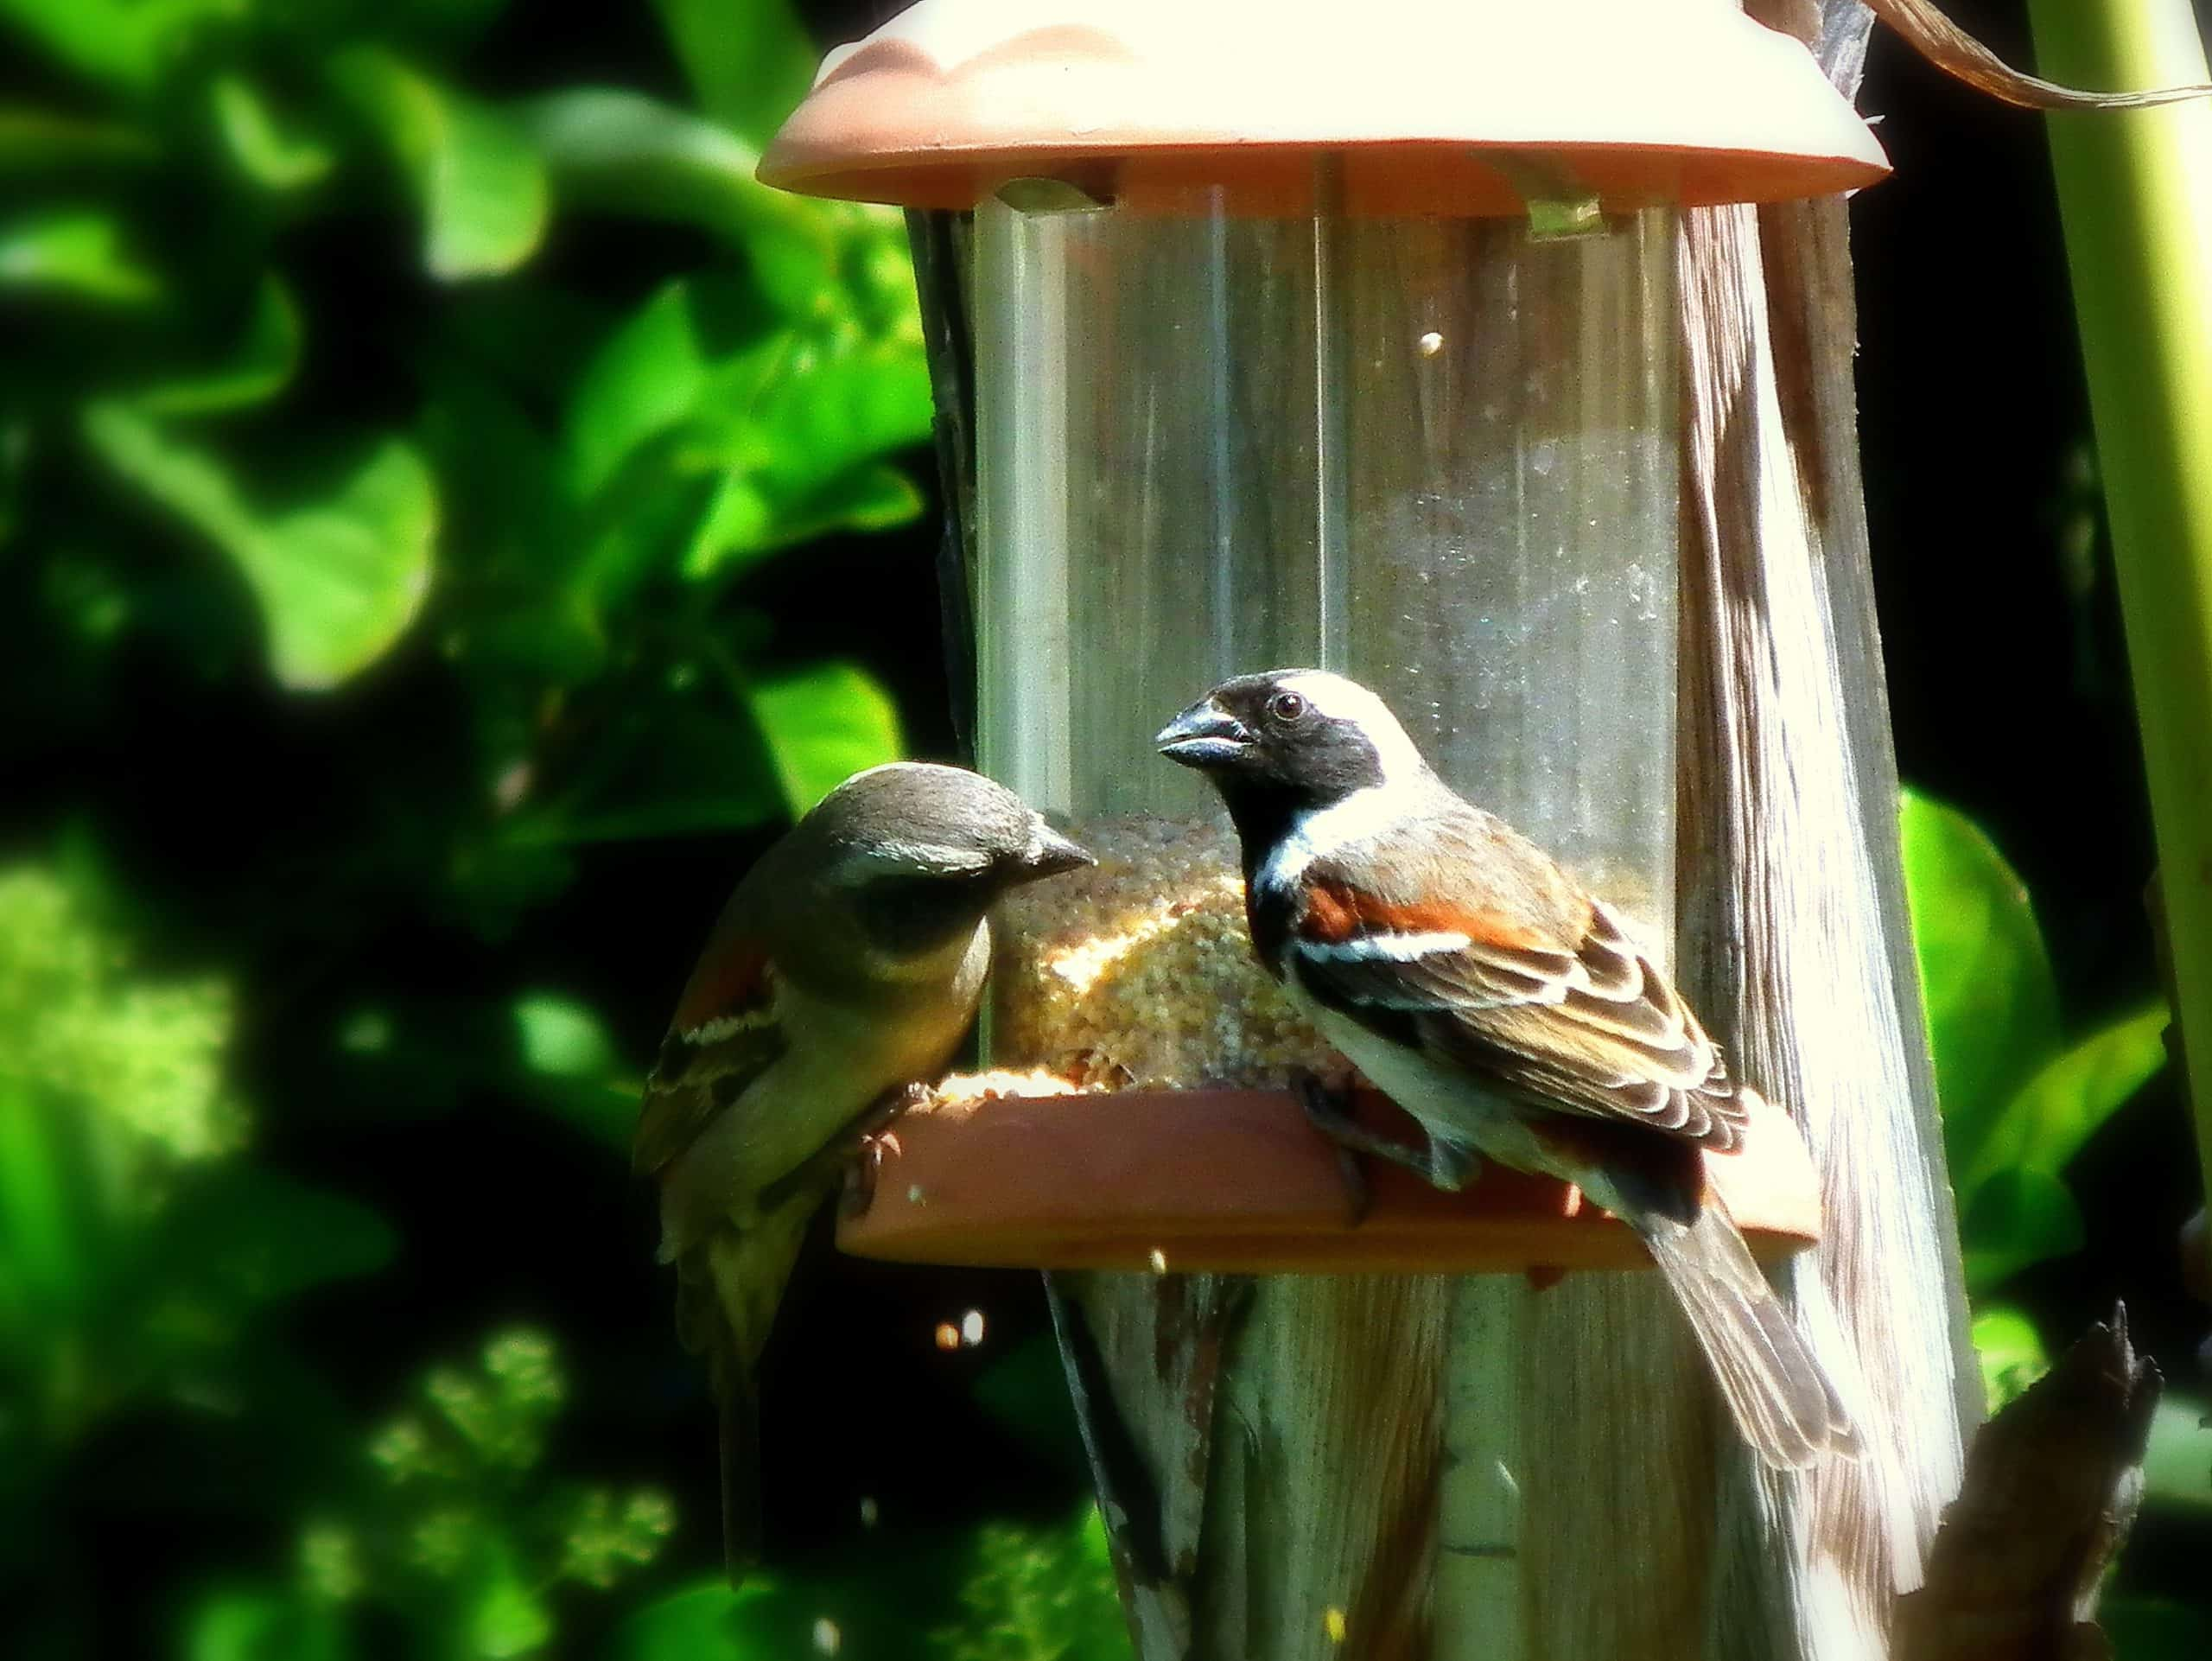 DIY Ideas To Make Bird Feeders To Place In The Garden With Birds